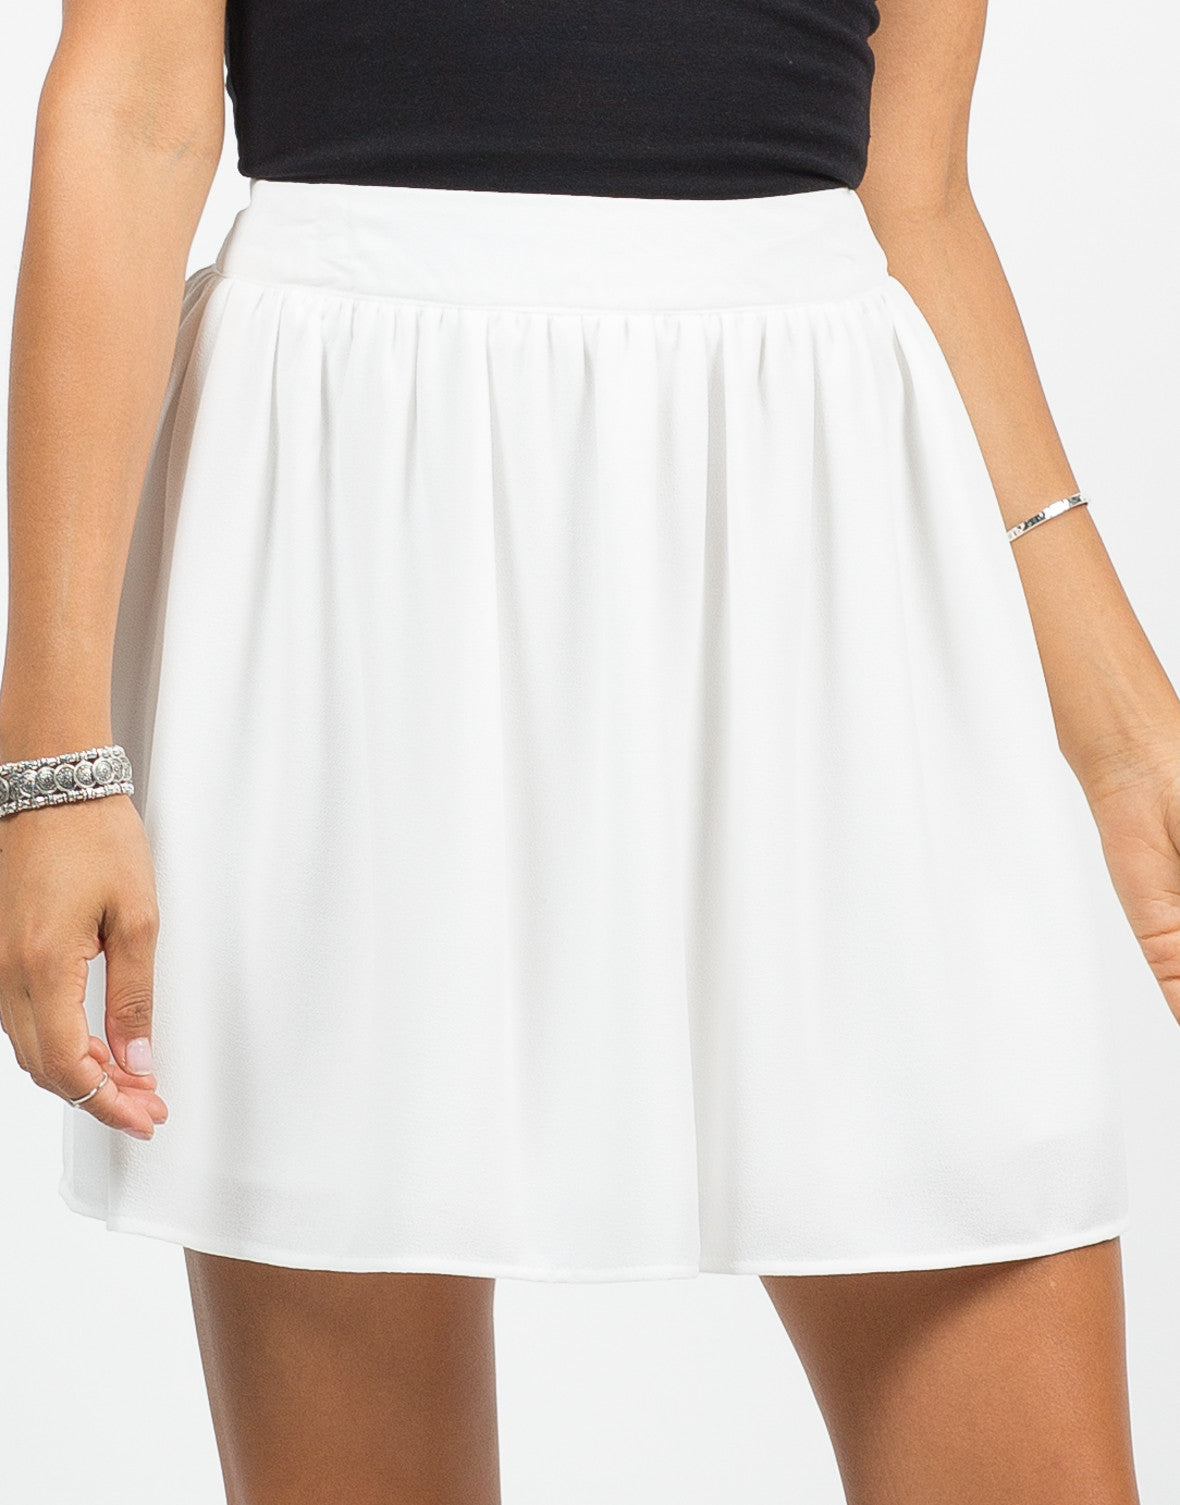 Detail of Chiffon Skater Skirt